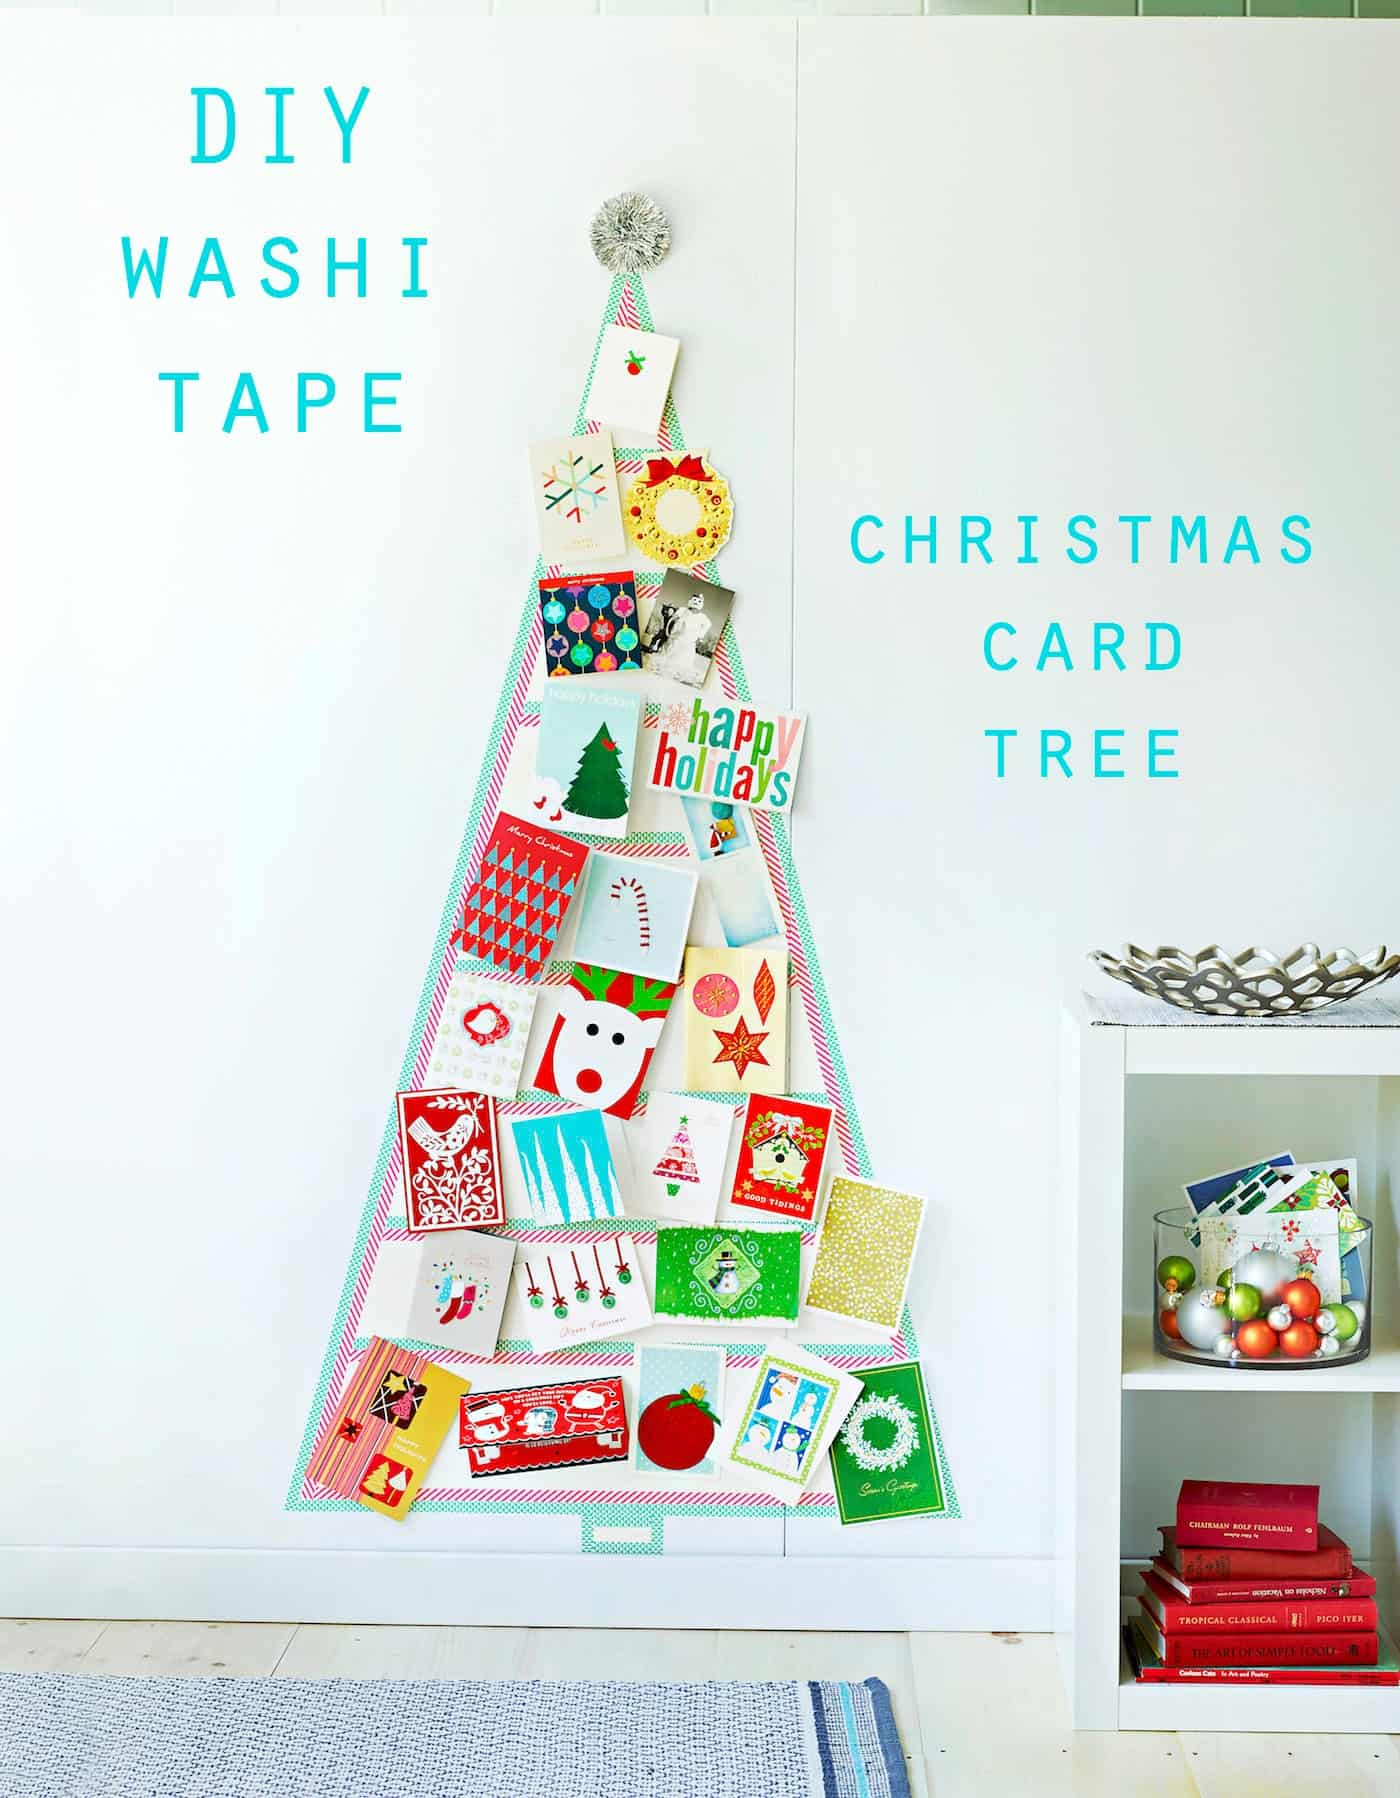 Taping Christmas Lights To Wall : DIY Washi Tape Christmas Card Tree - diycandy.com